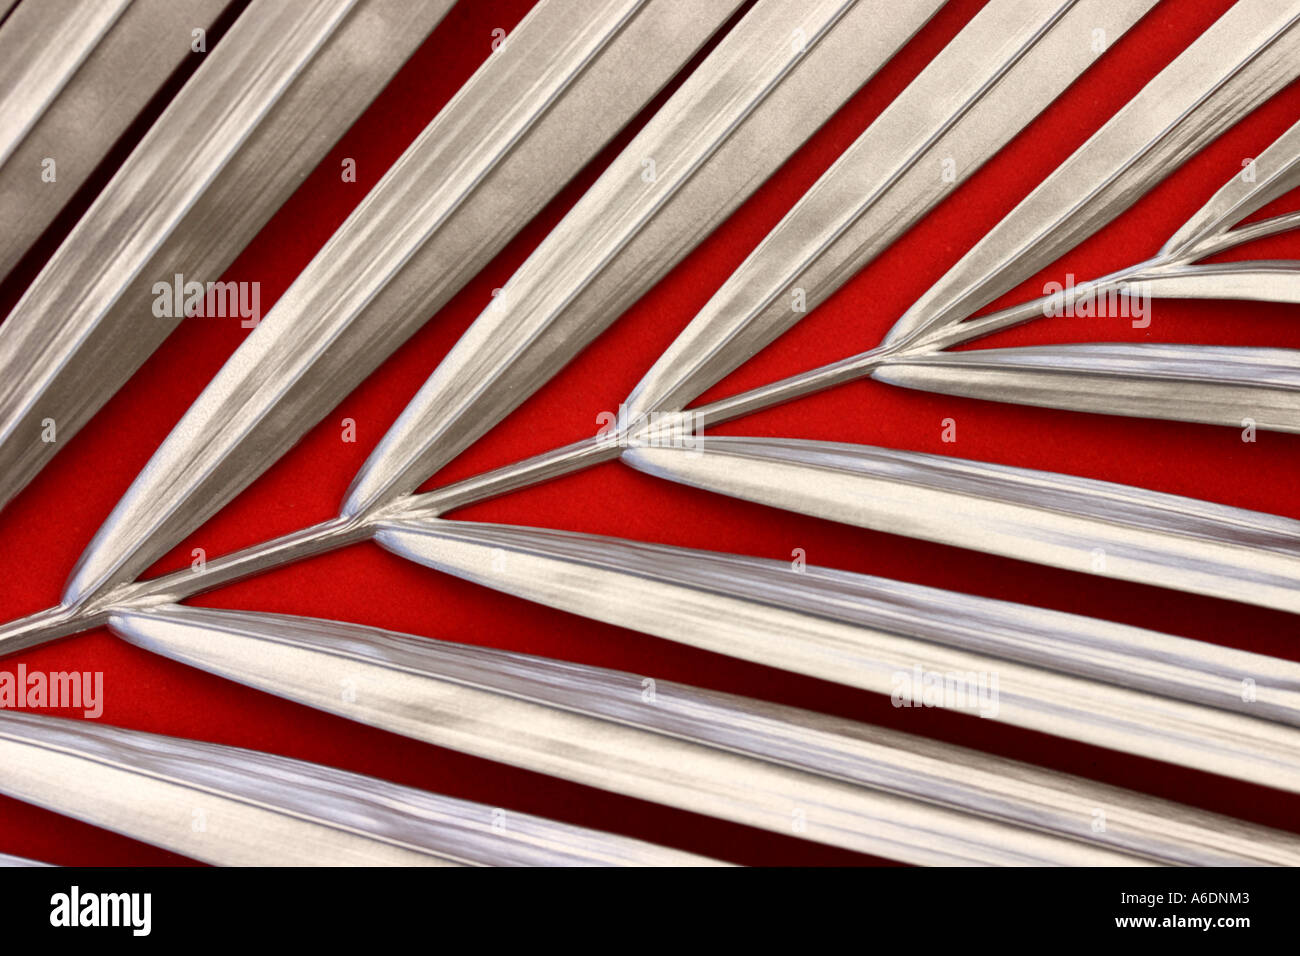 SILVER PALM FROND  RED BACKGROUND HORIZONTAL BAPDB6002 - Stock Image